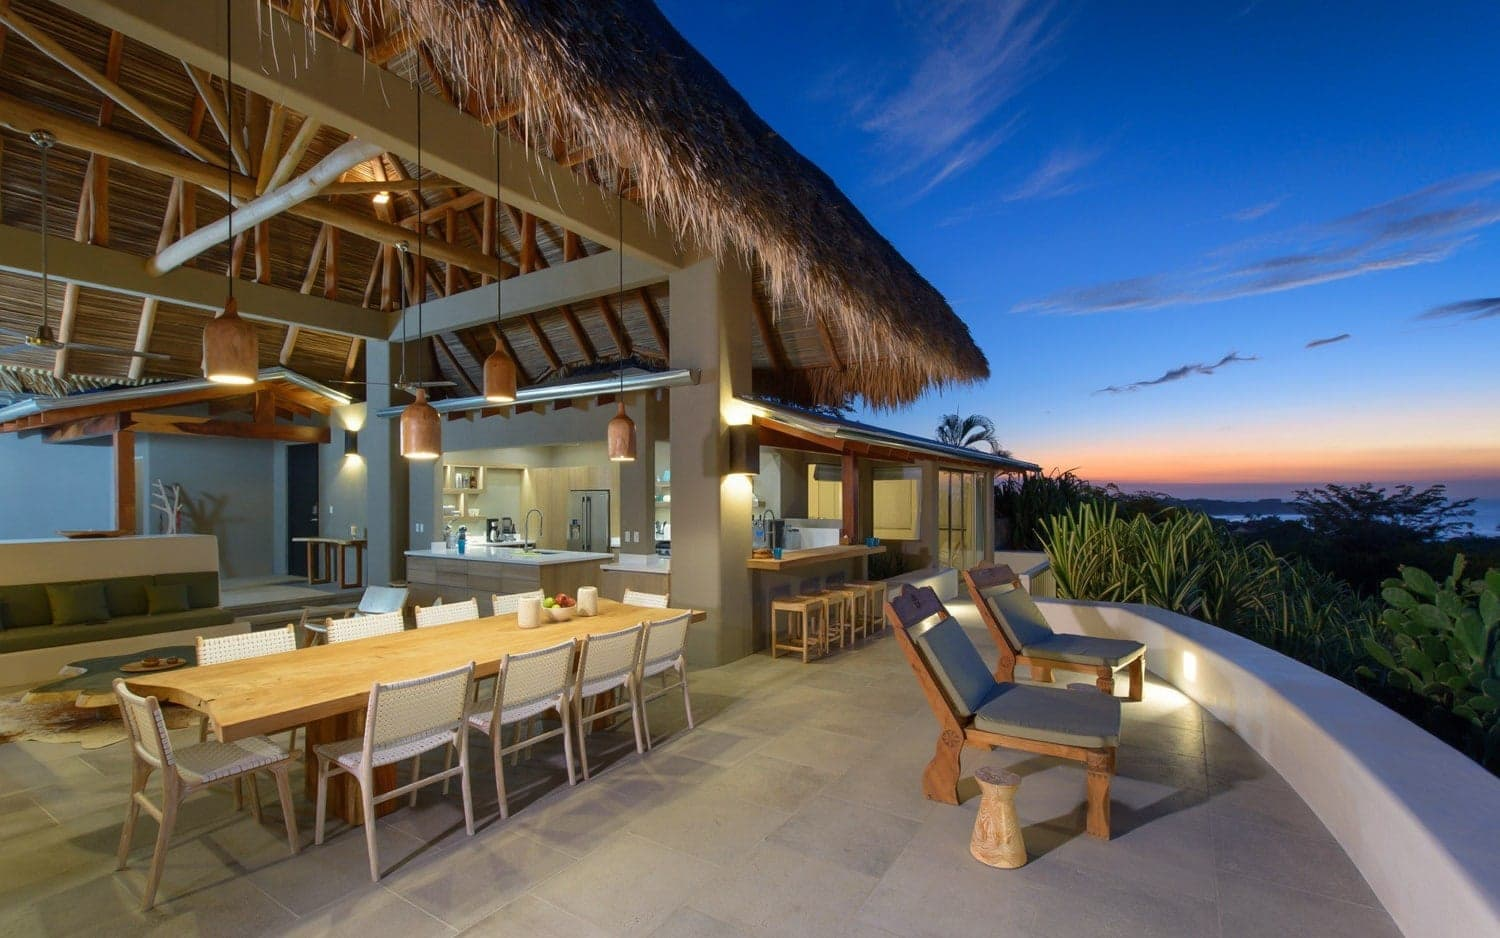 Sunset House in Tamarindo is a marvelous venue for a luxury, private wedding in Costa Rica.